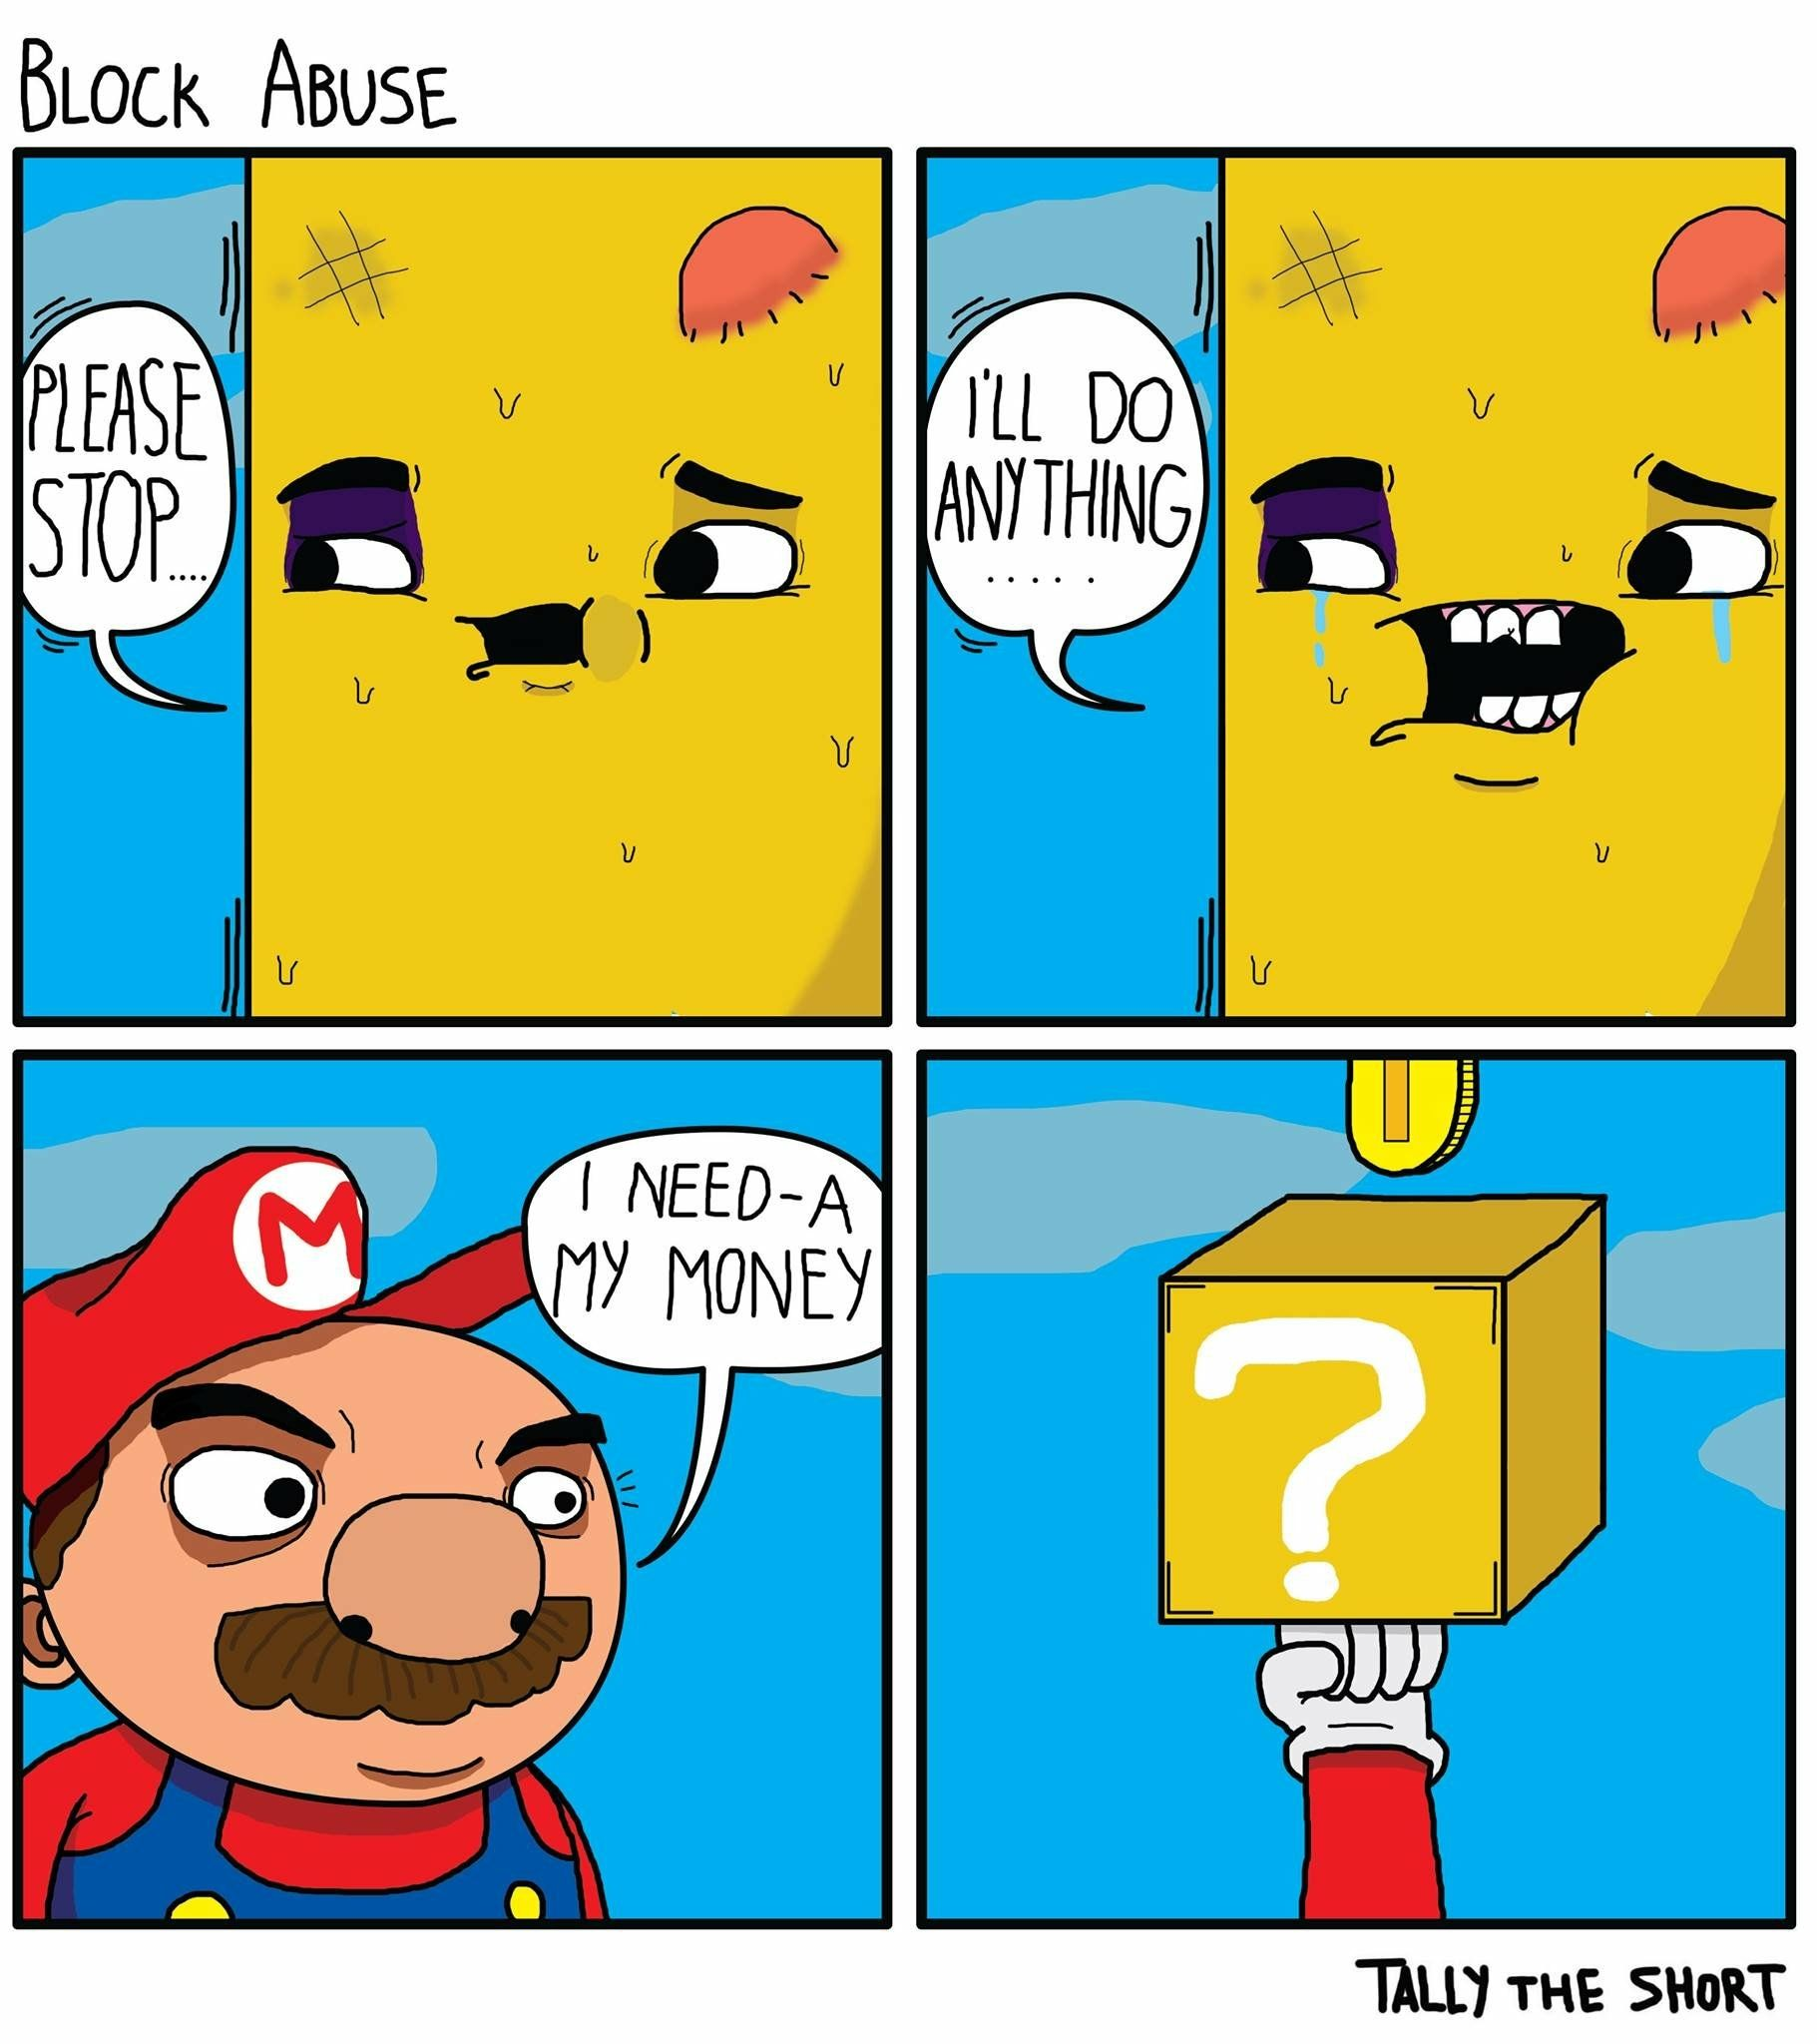 mario super memes funny nintendo brutal think bros comics lot than uploaded user gaming laugh try wii